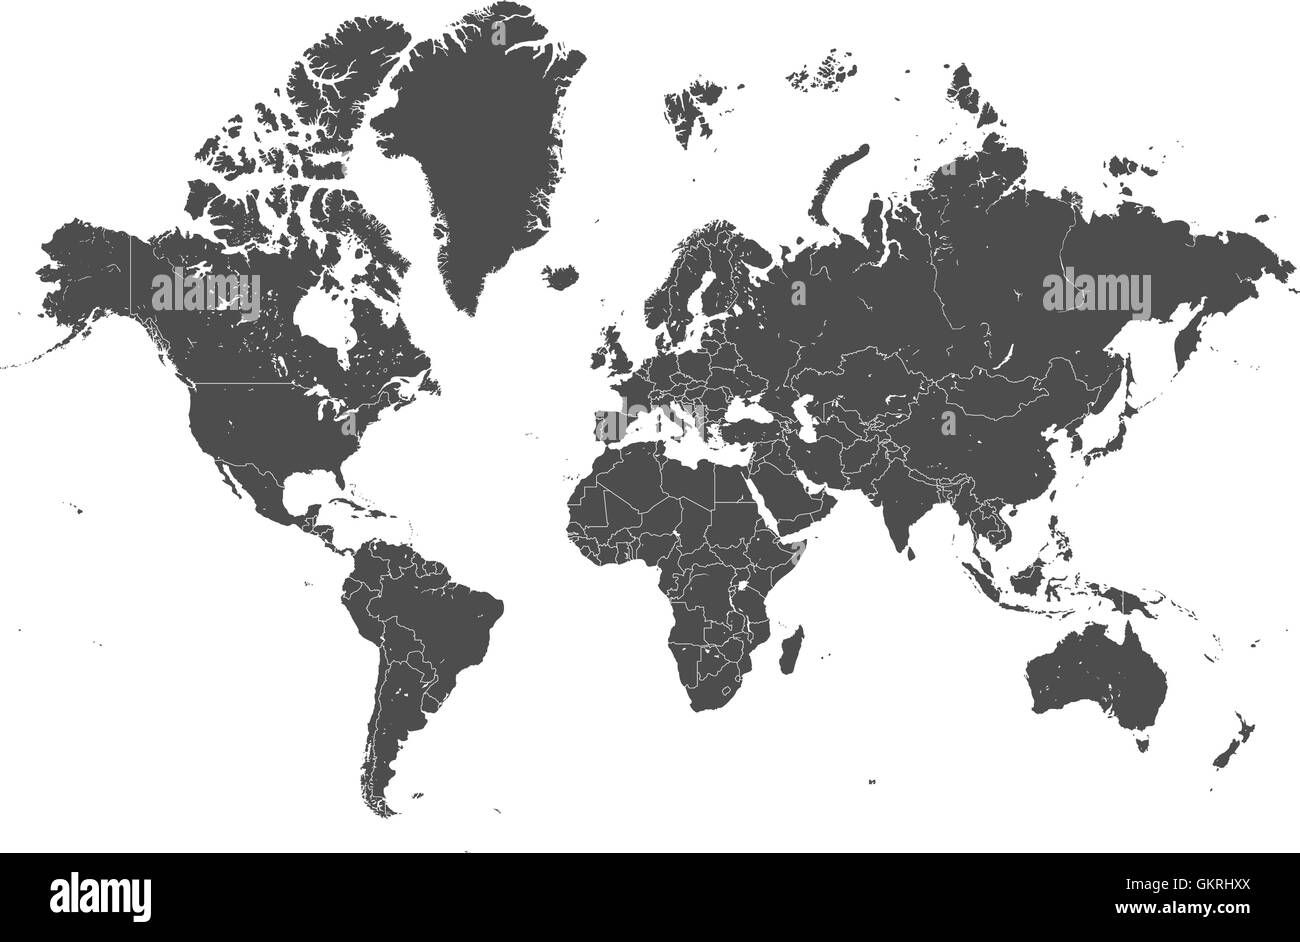 World map with gray borders vector stock vector art illustration world map with gray borders vector gumiabroncs Choice Image